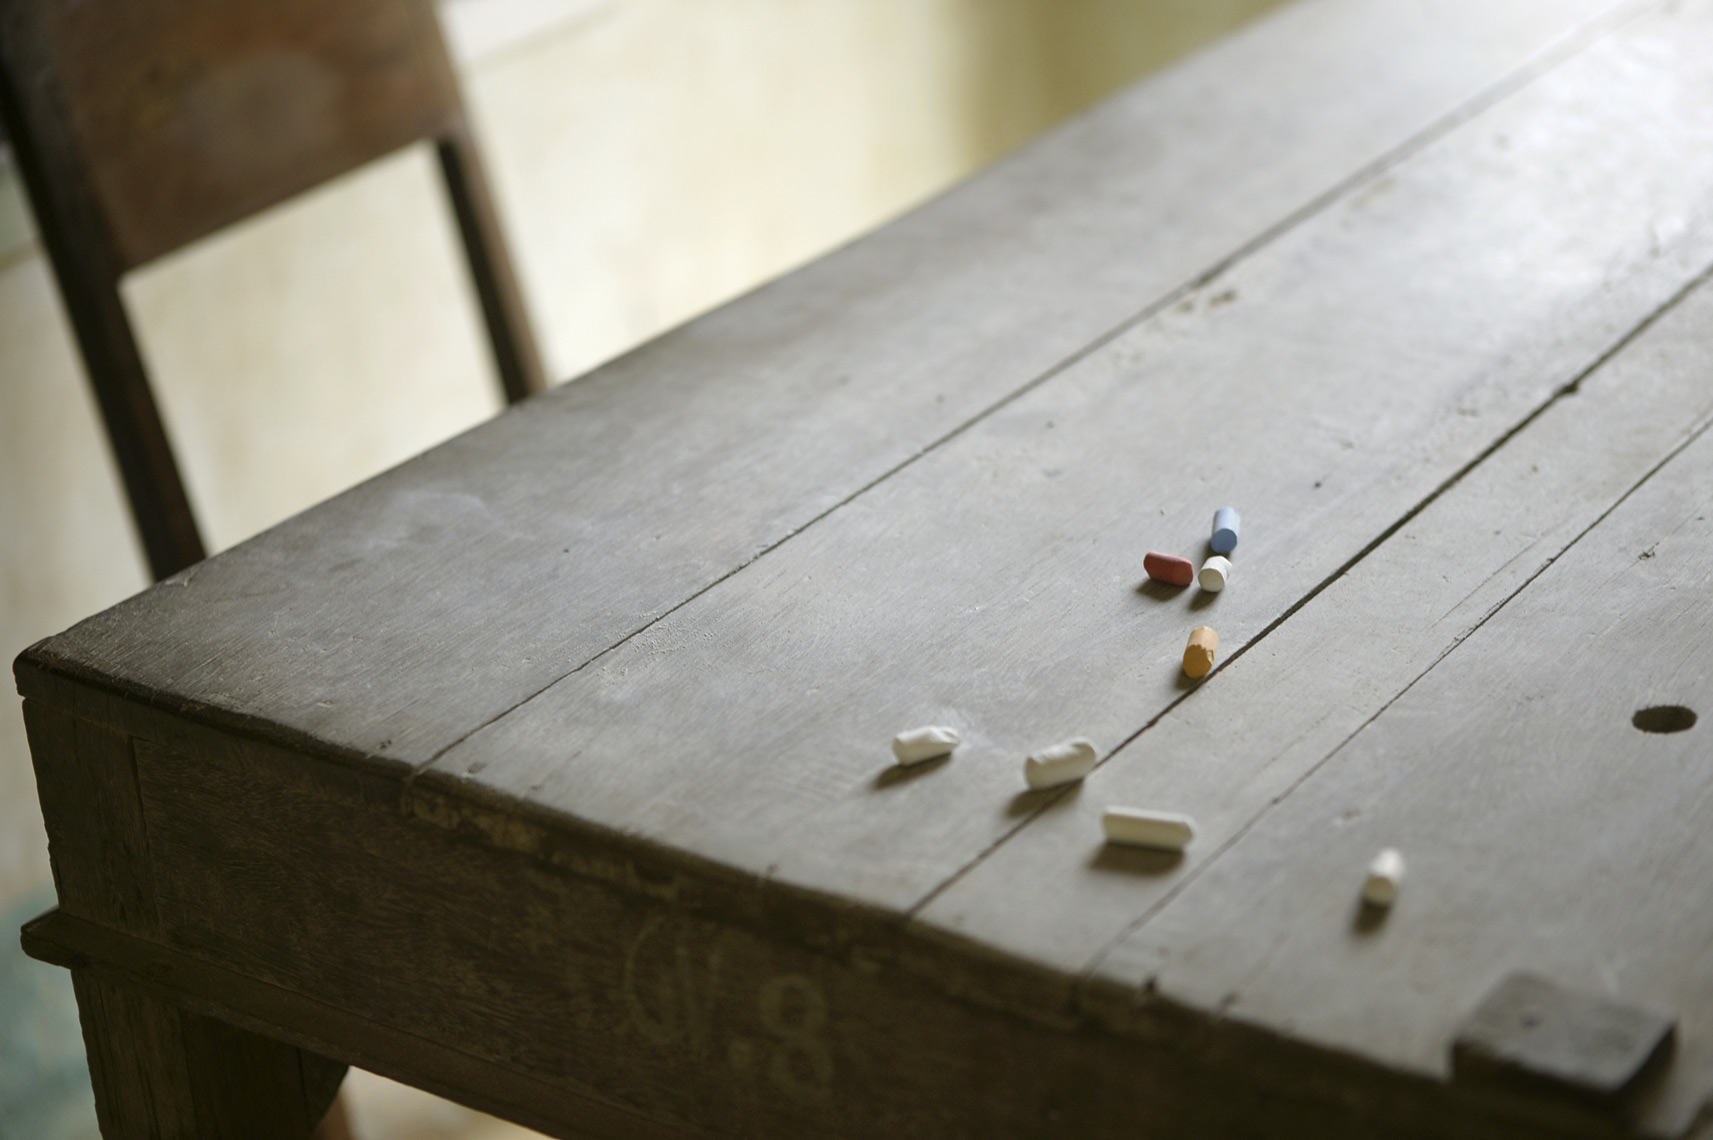 Detail of chalk on table, Viet Nam/Steve Mason Photography